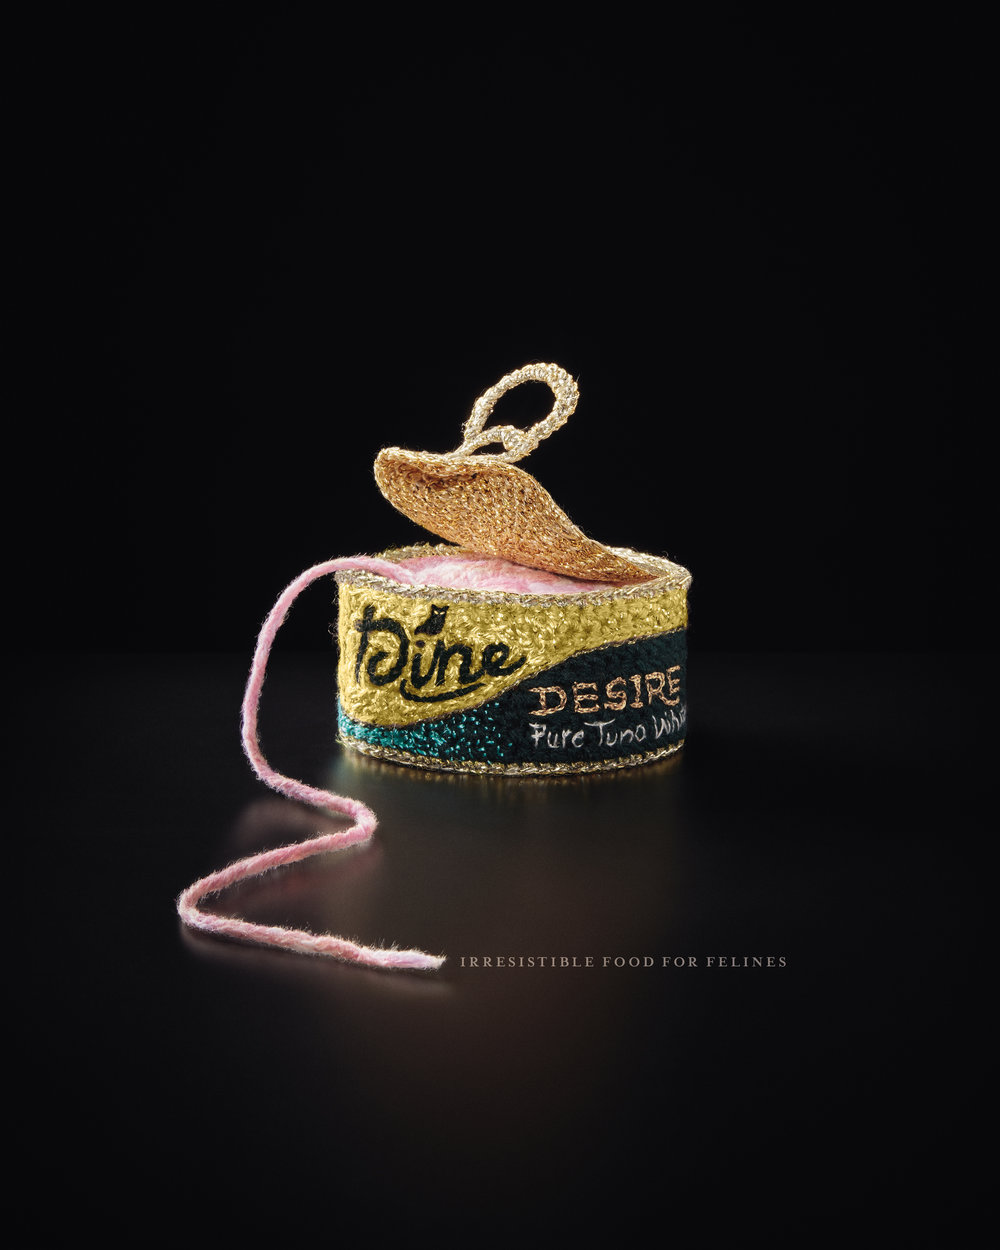 Dine_Irresistible+Packshots_The+Yarn+Can_rgb.jpg